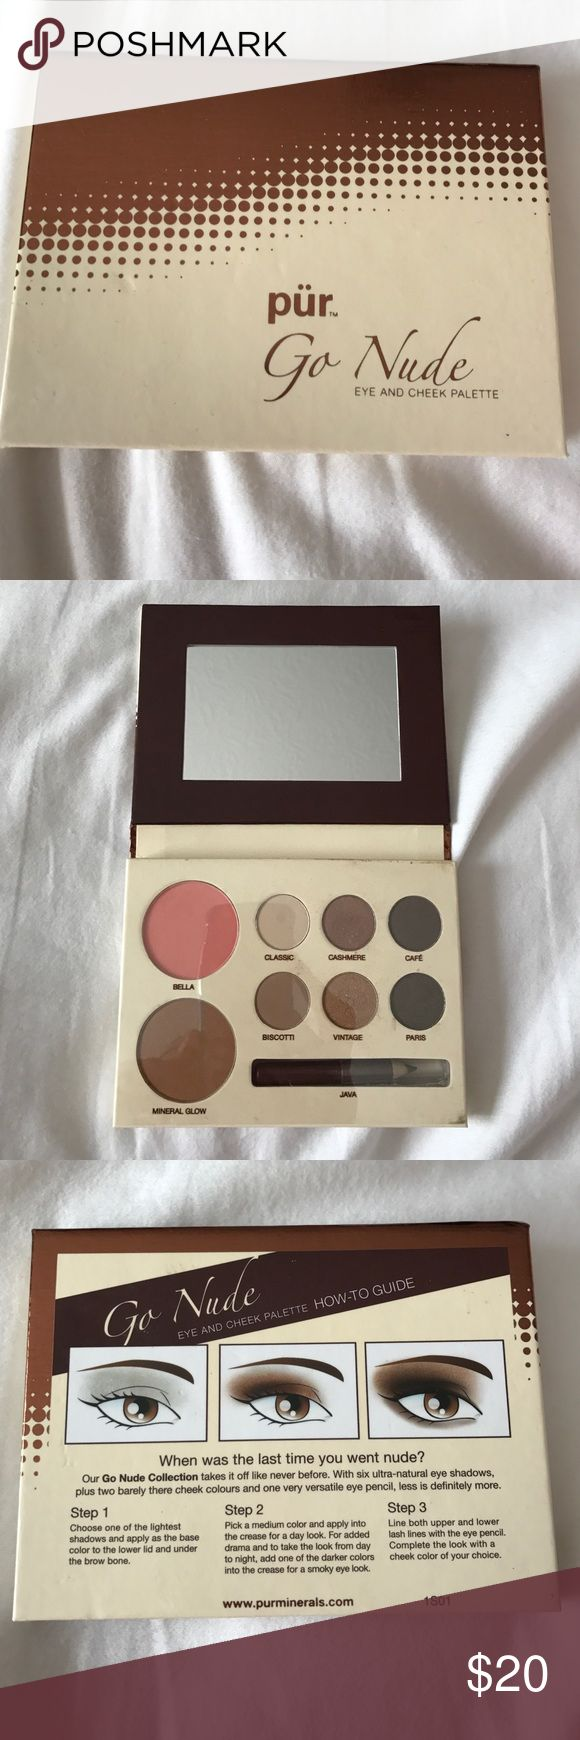 PUR Minerals Go Nude Eye and Cheek Palette PUR Cosmetics Go Nude Eye and Cheek Palette. NWOT. Never used. Includes classic, cashmere, cafe, biscotti, vintage and Paris eye shadow colors as well as Bella and Mineral glow for Cheeks. One small Java eyeliner pencil as well. Has How-To guide on the back. As always PUR Cosmetics are cruelty free❤️! Pur Minerals Makeup Eyeshadow